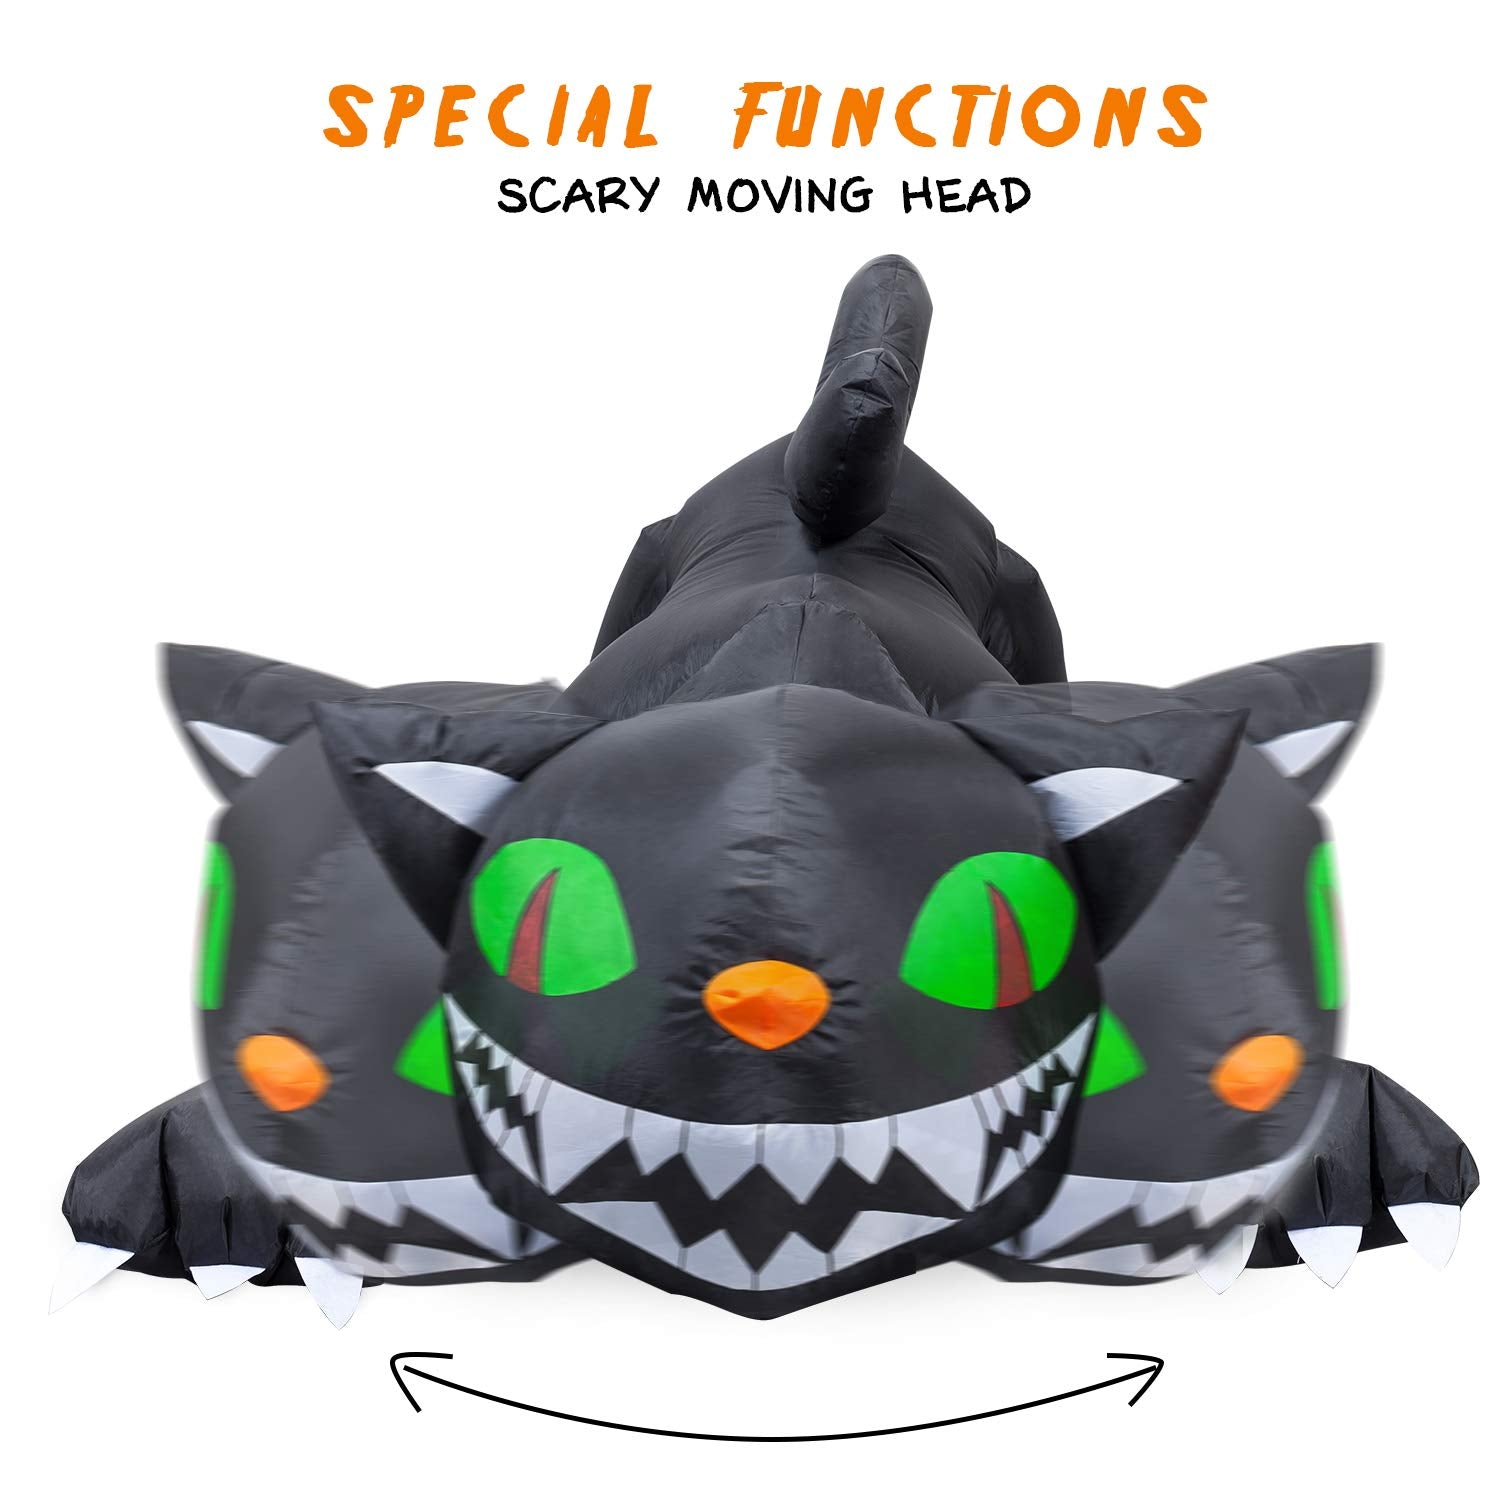 YIHONG 6 Ft Long Halloween Inflatable Animated Black Cat with Moving Head Decorations Blow up Party Decor for Indoor Outdoor Yard with LED Lights